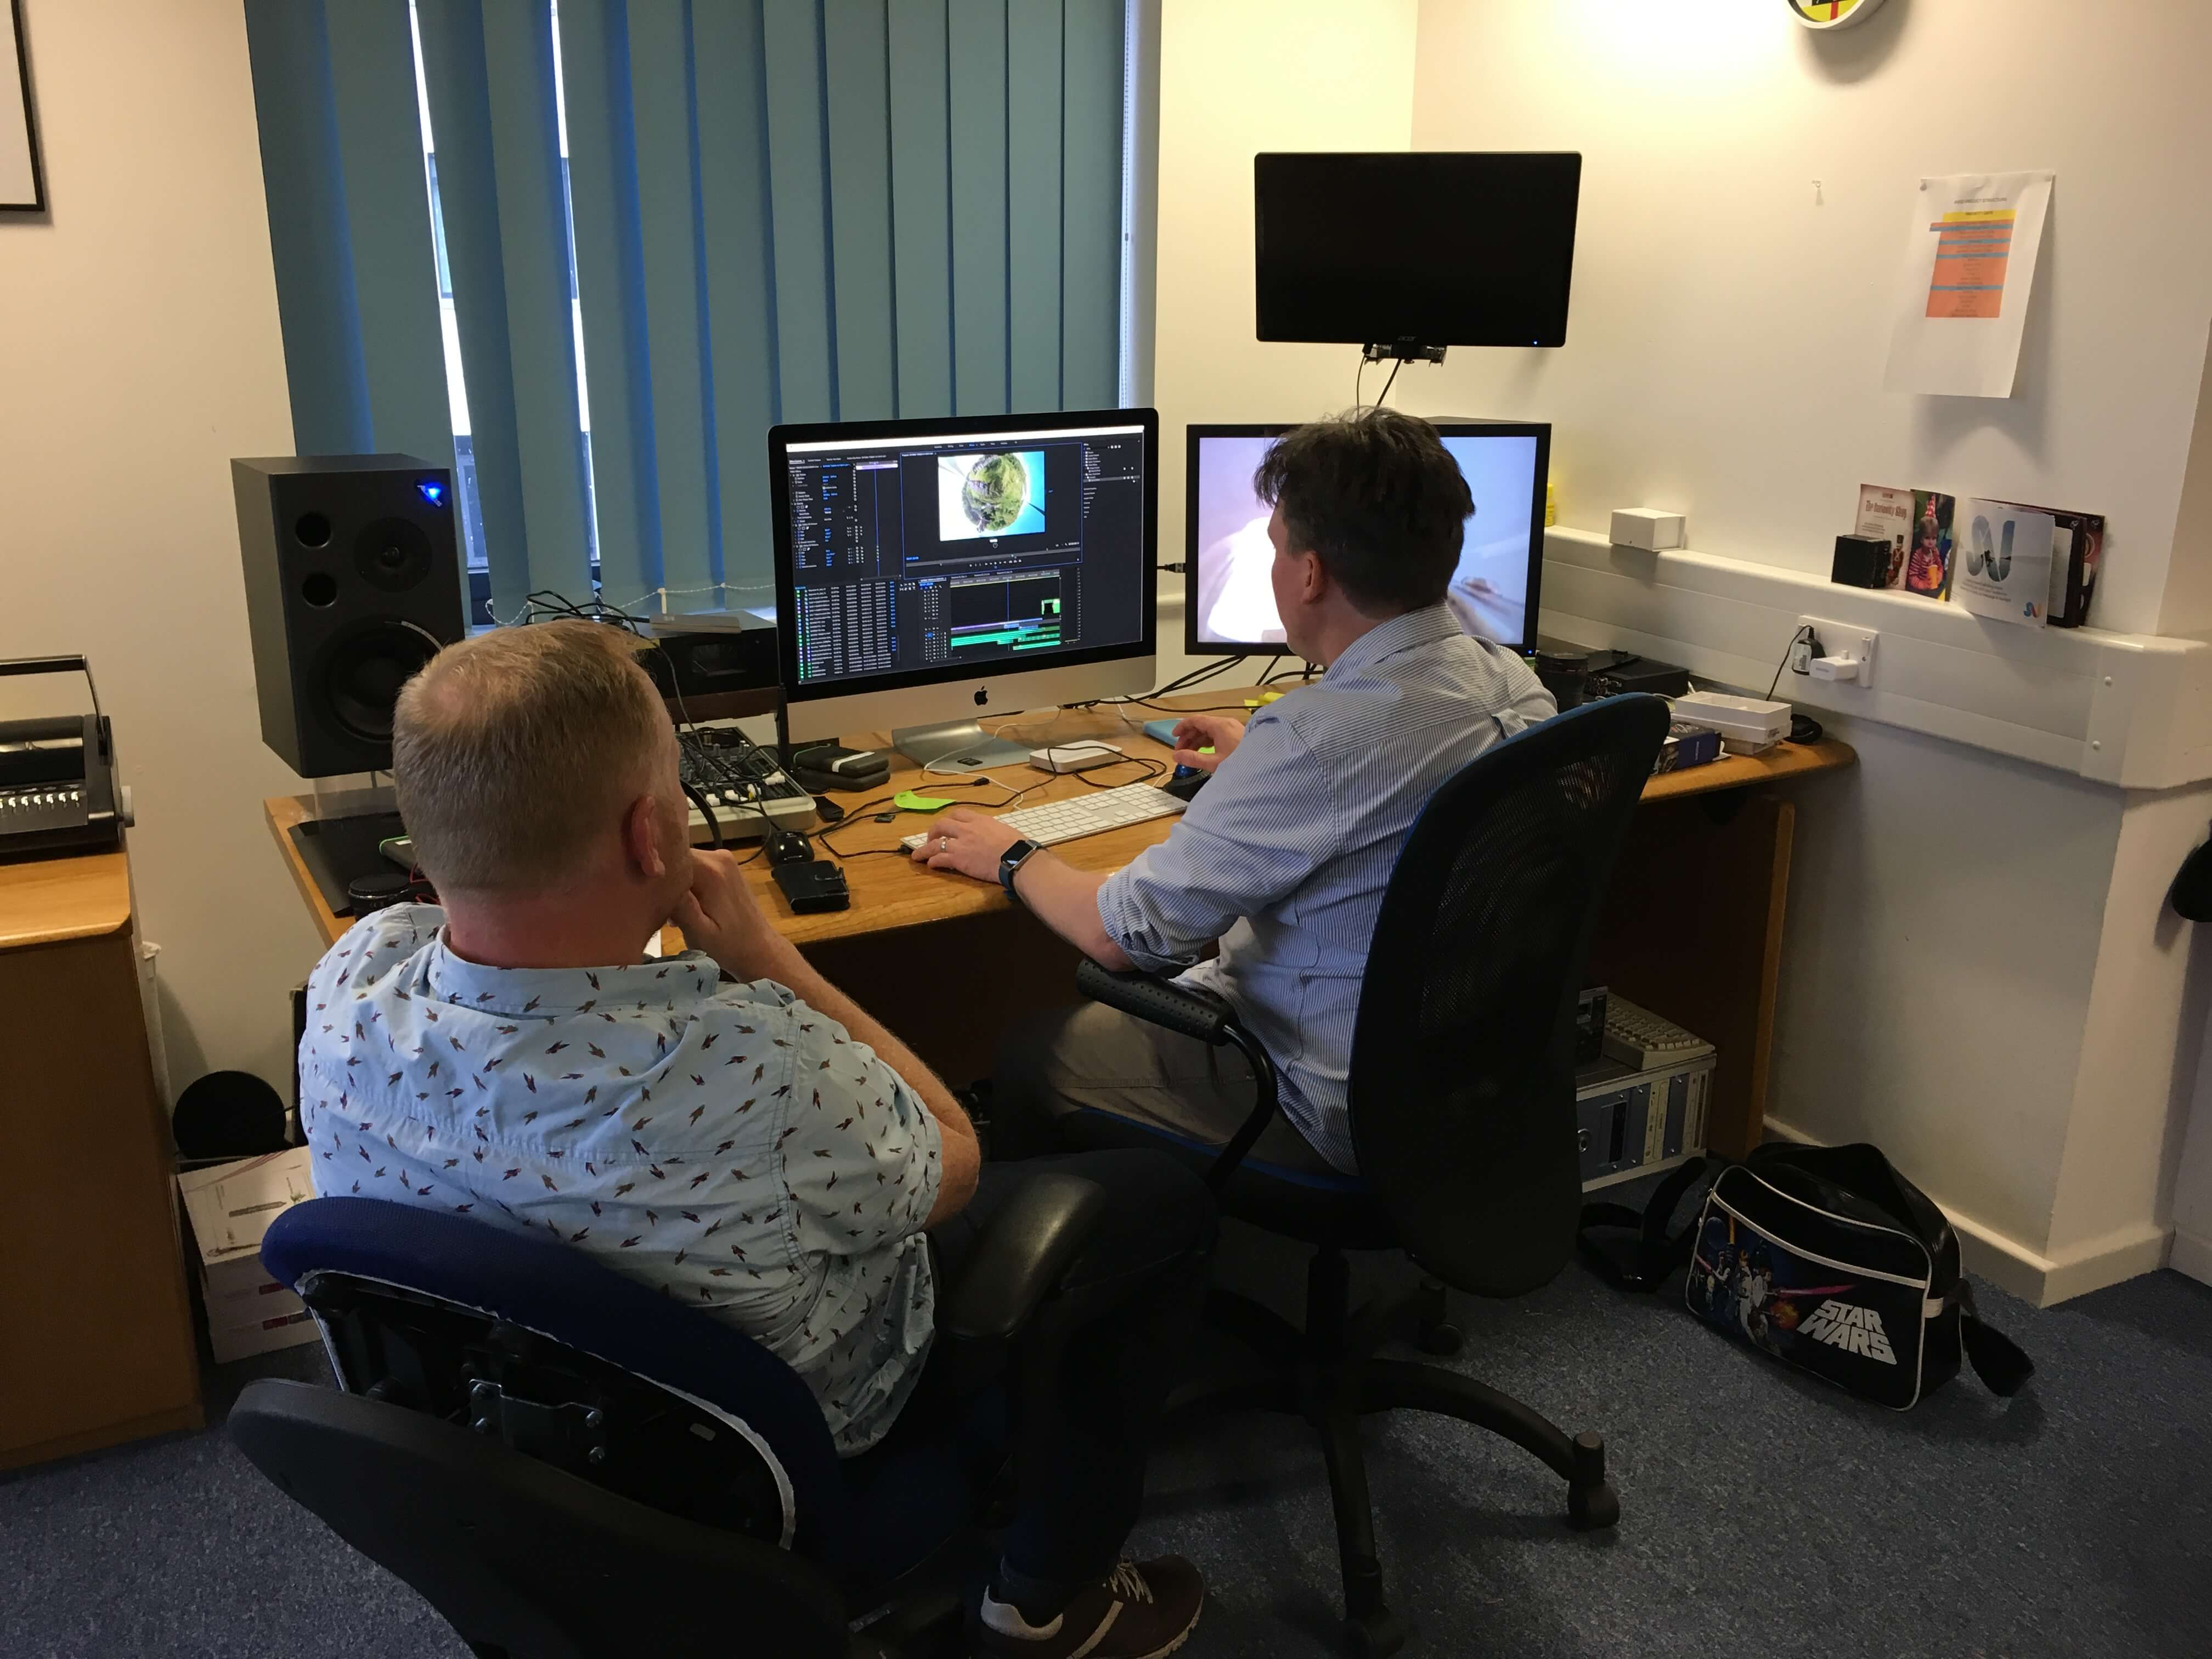 Promotional video production Hangloose Cornwall creating 360 VR tour. Editing the 360 VR tour video in the office